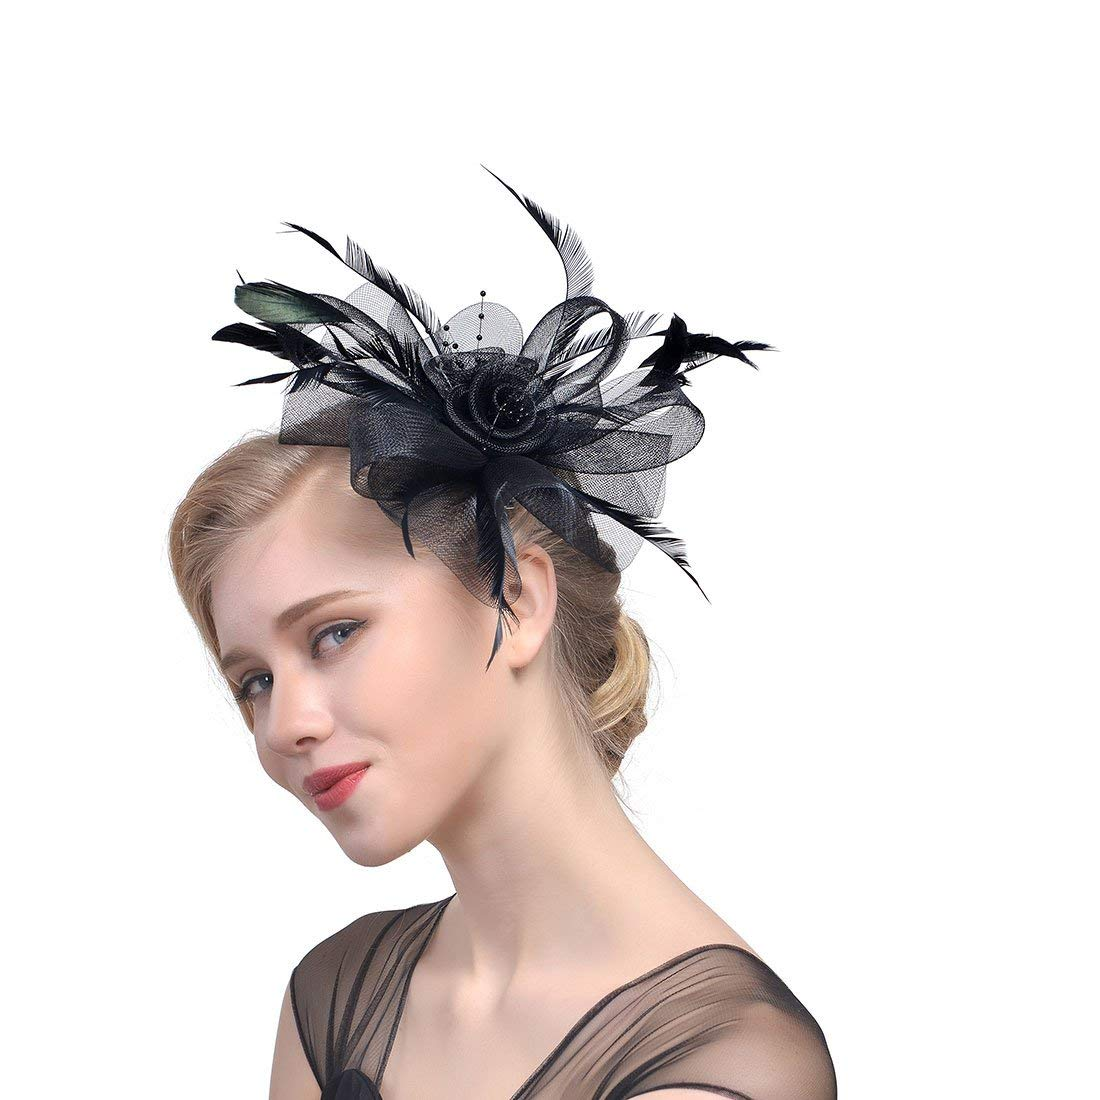 Gerilea Womens Feather Fascinators Hat Party Cocktail Flower Bridal Headpieces